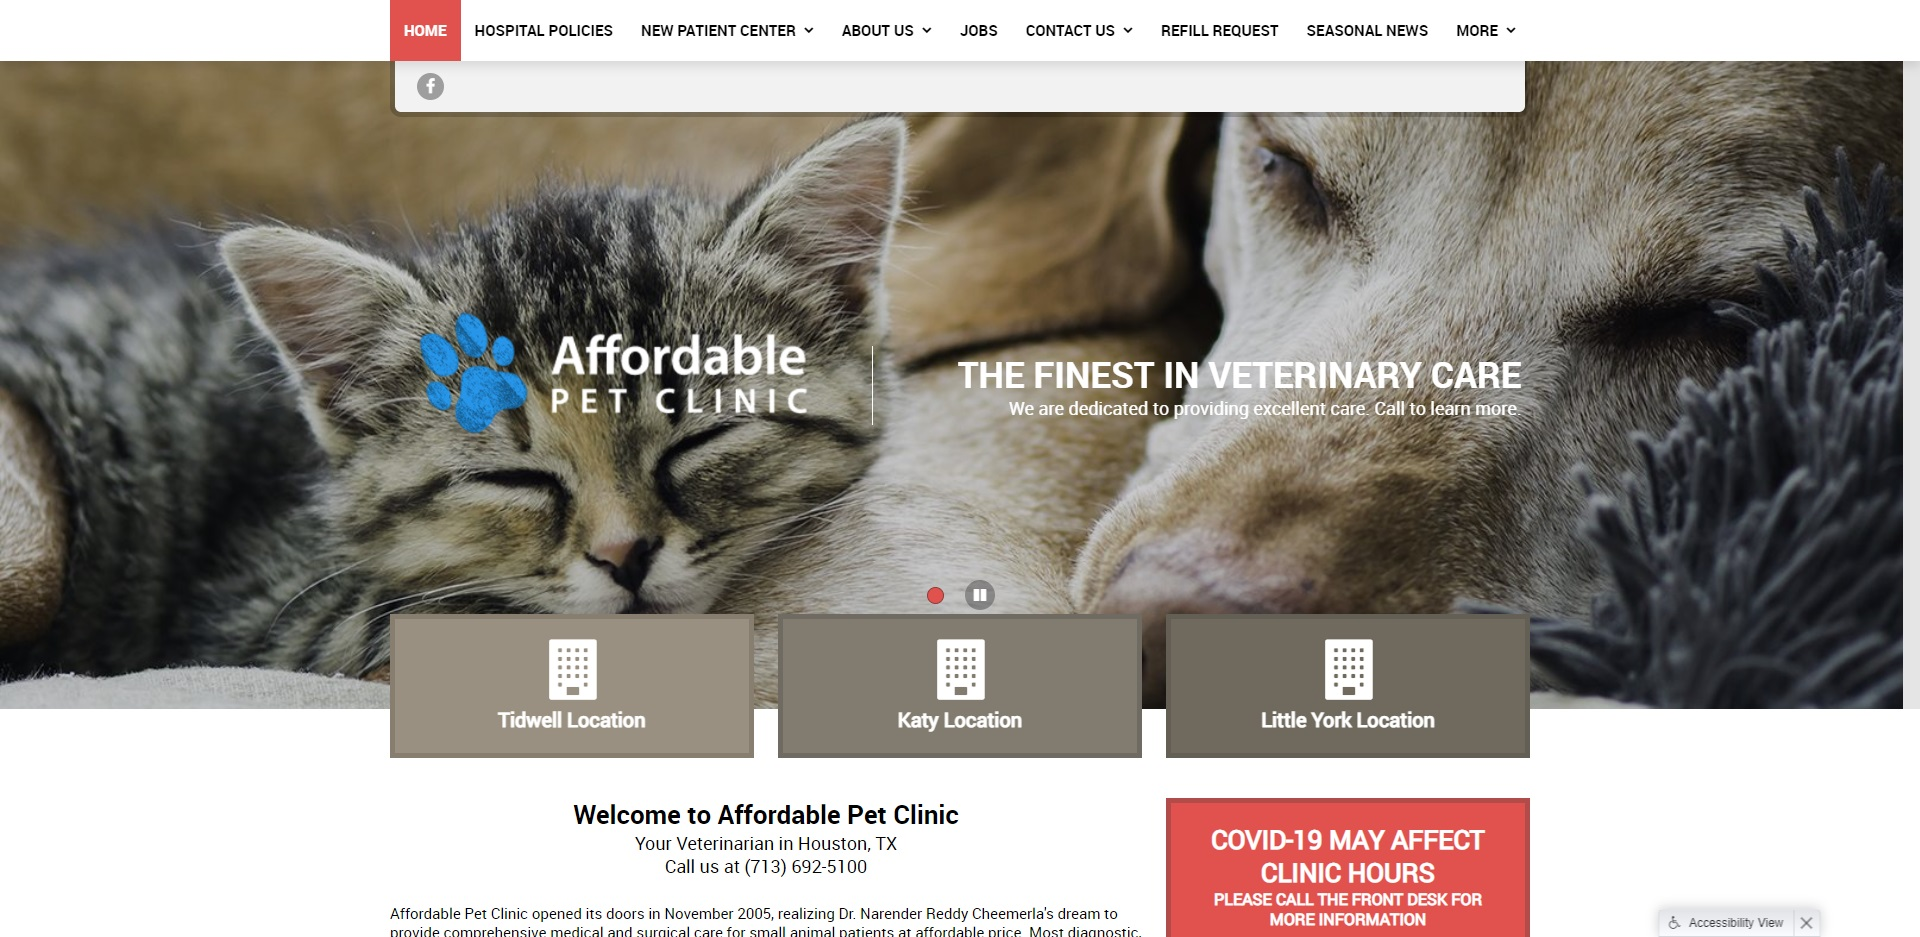 Best Pet Care Centers in Houston, TX